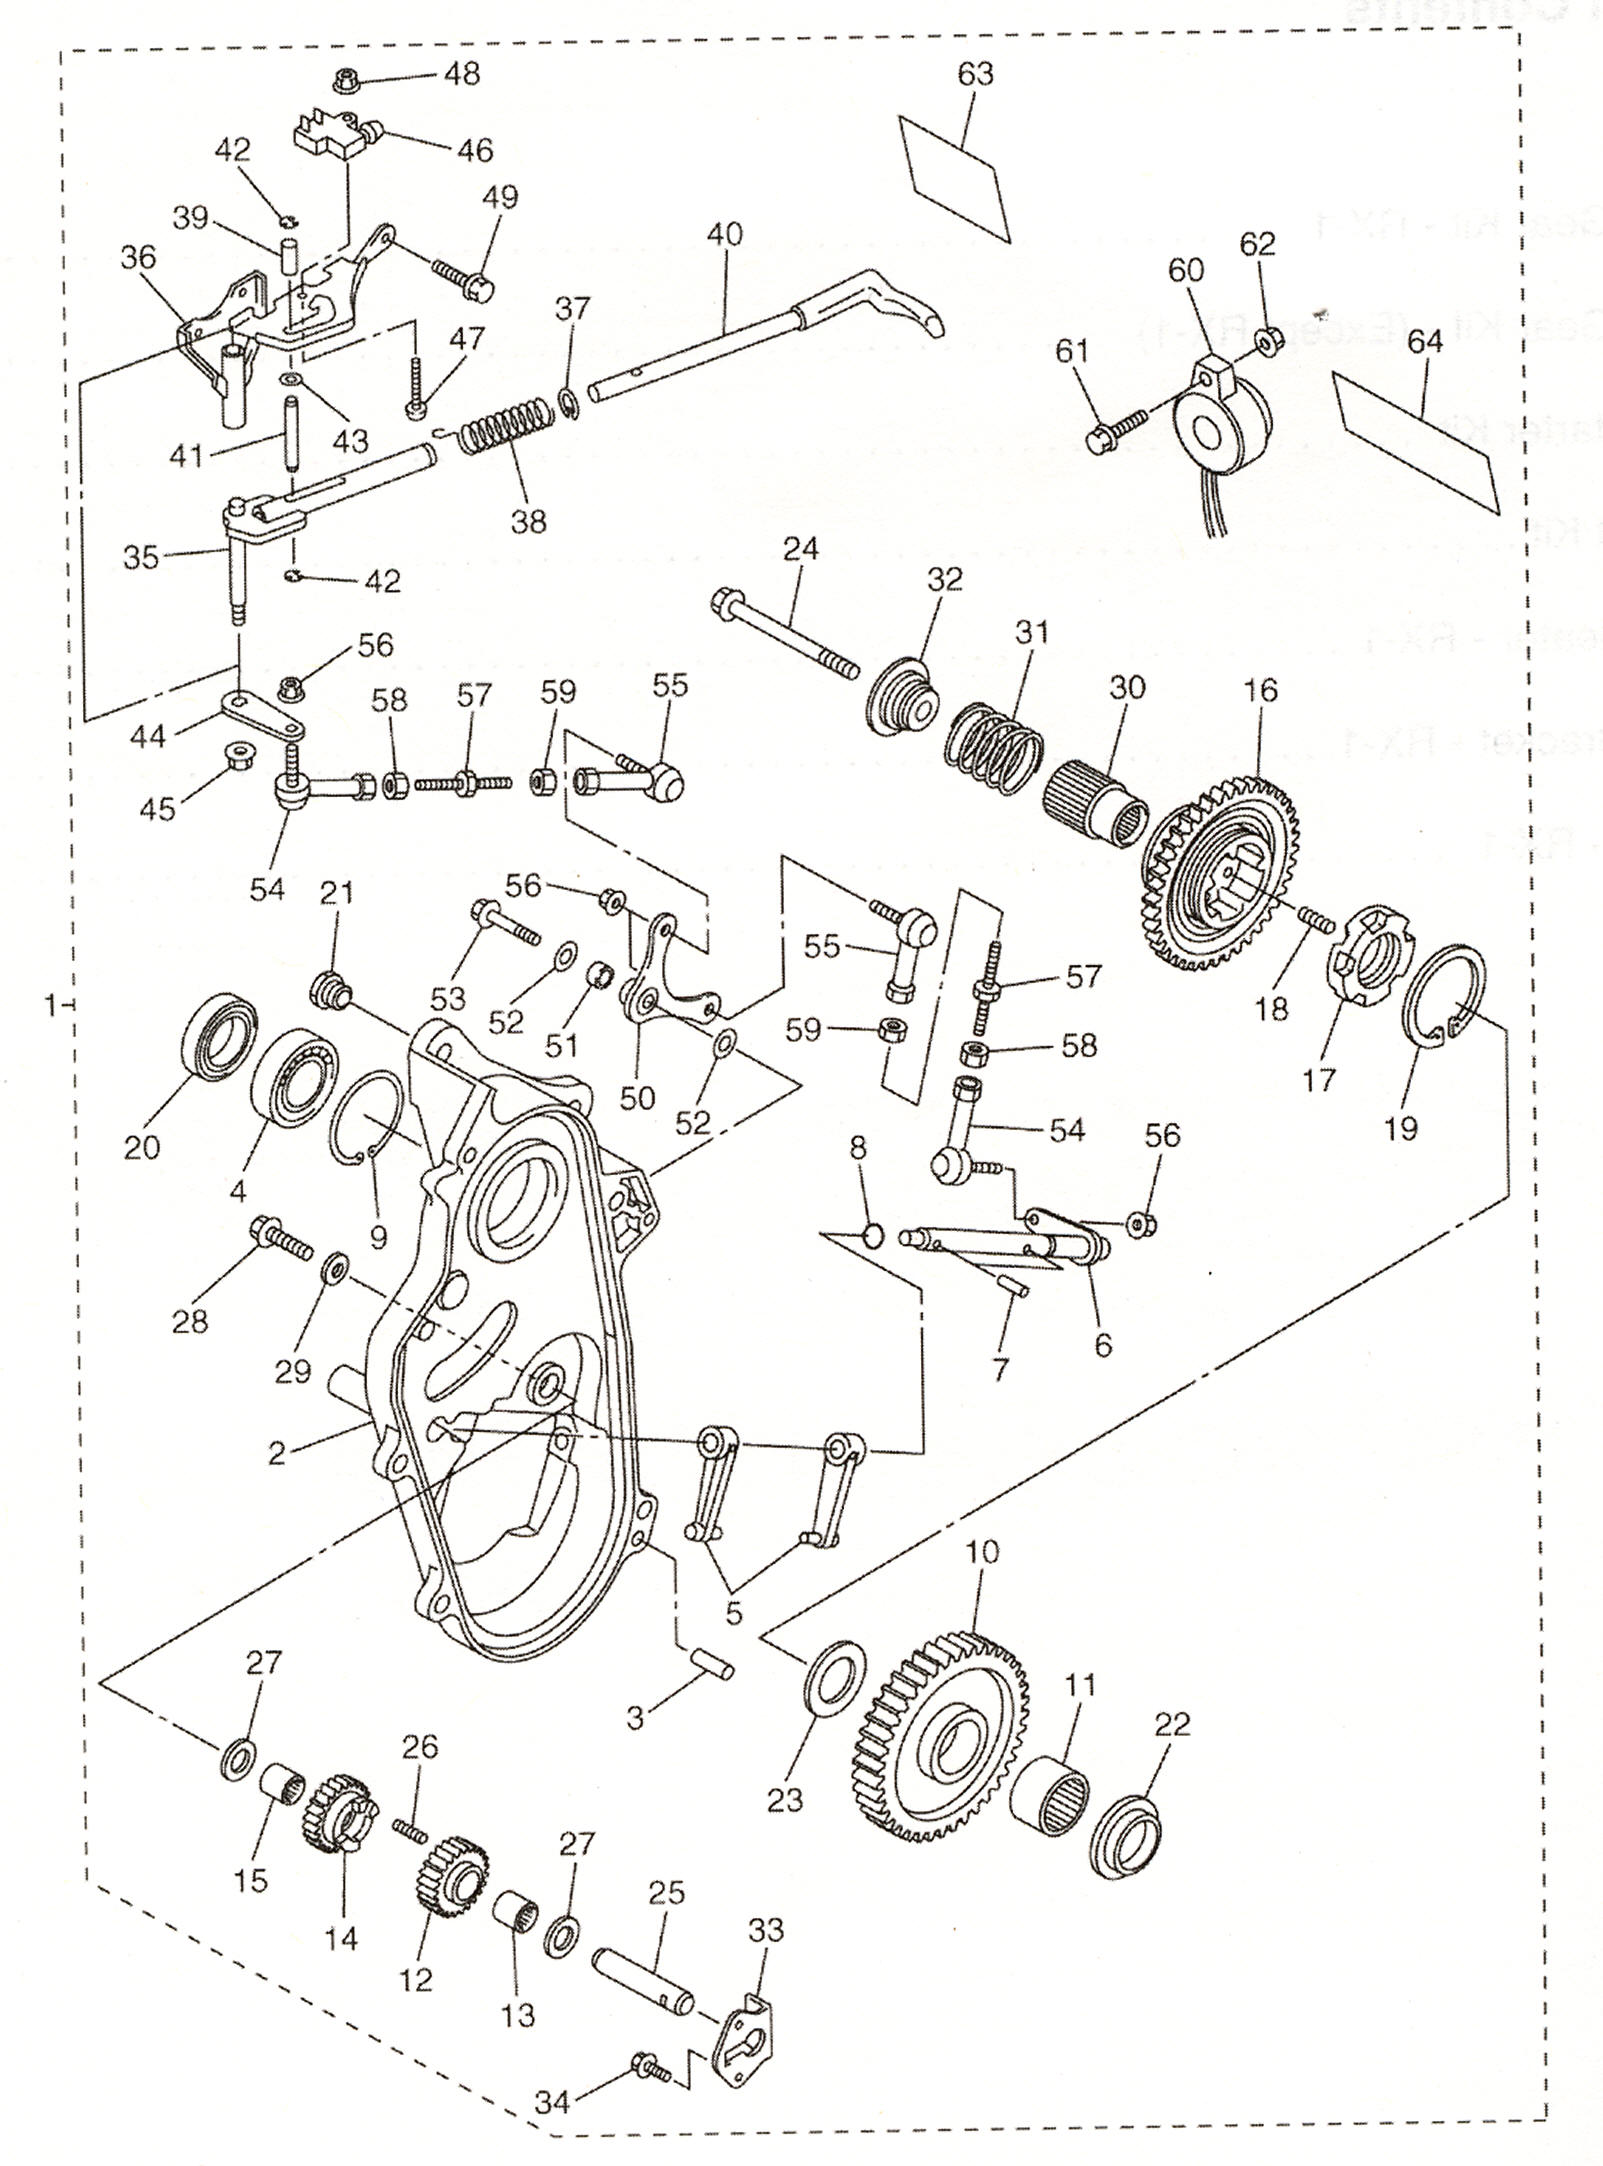 Audio Wiring Diagram Of 1997 Mercedes Benz C230 Binatanicom Https Post Yamaha Rx 1 Snowmobile Rx1parts